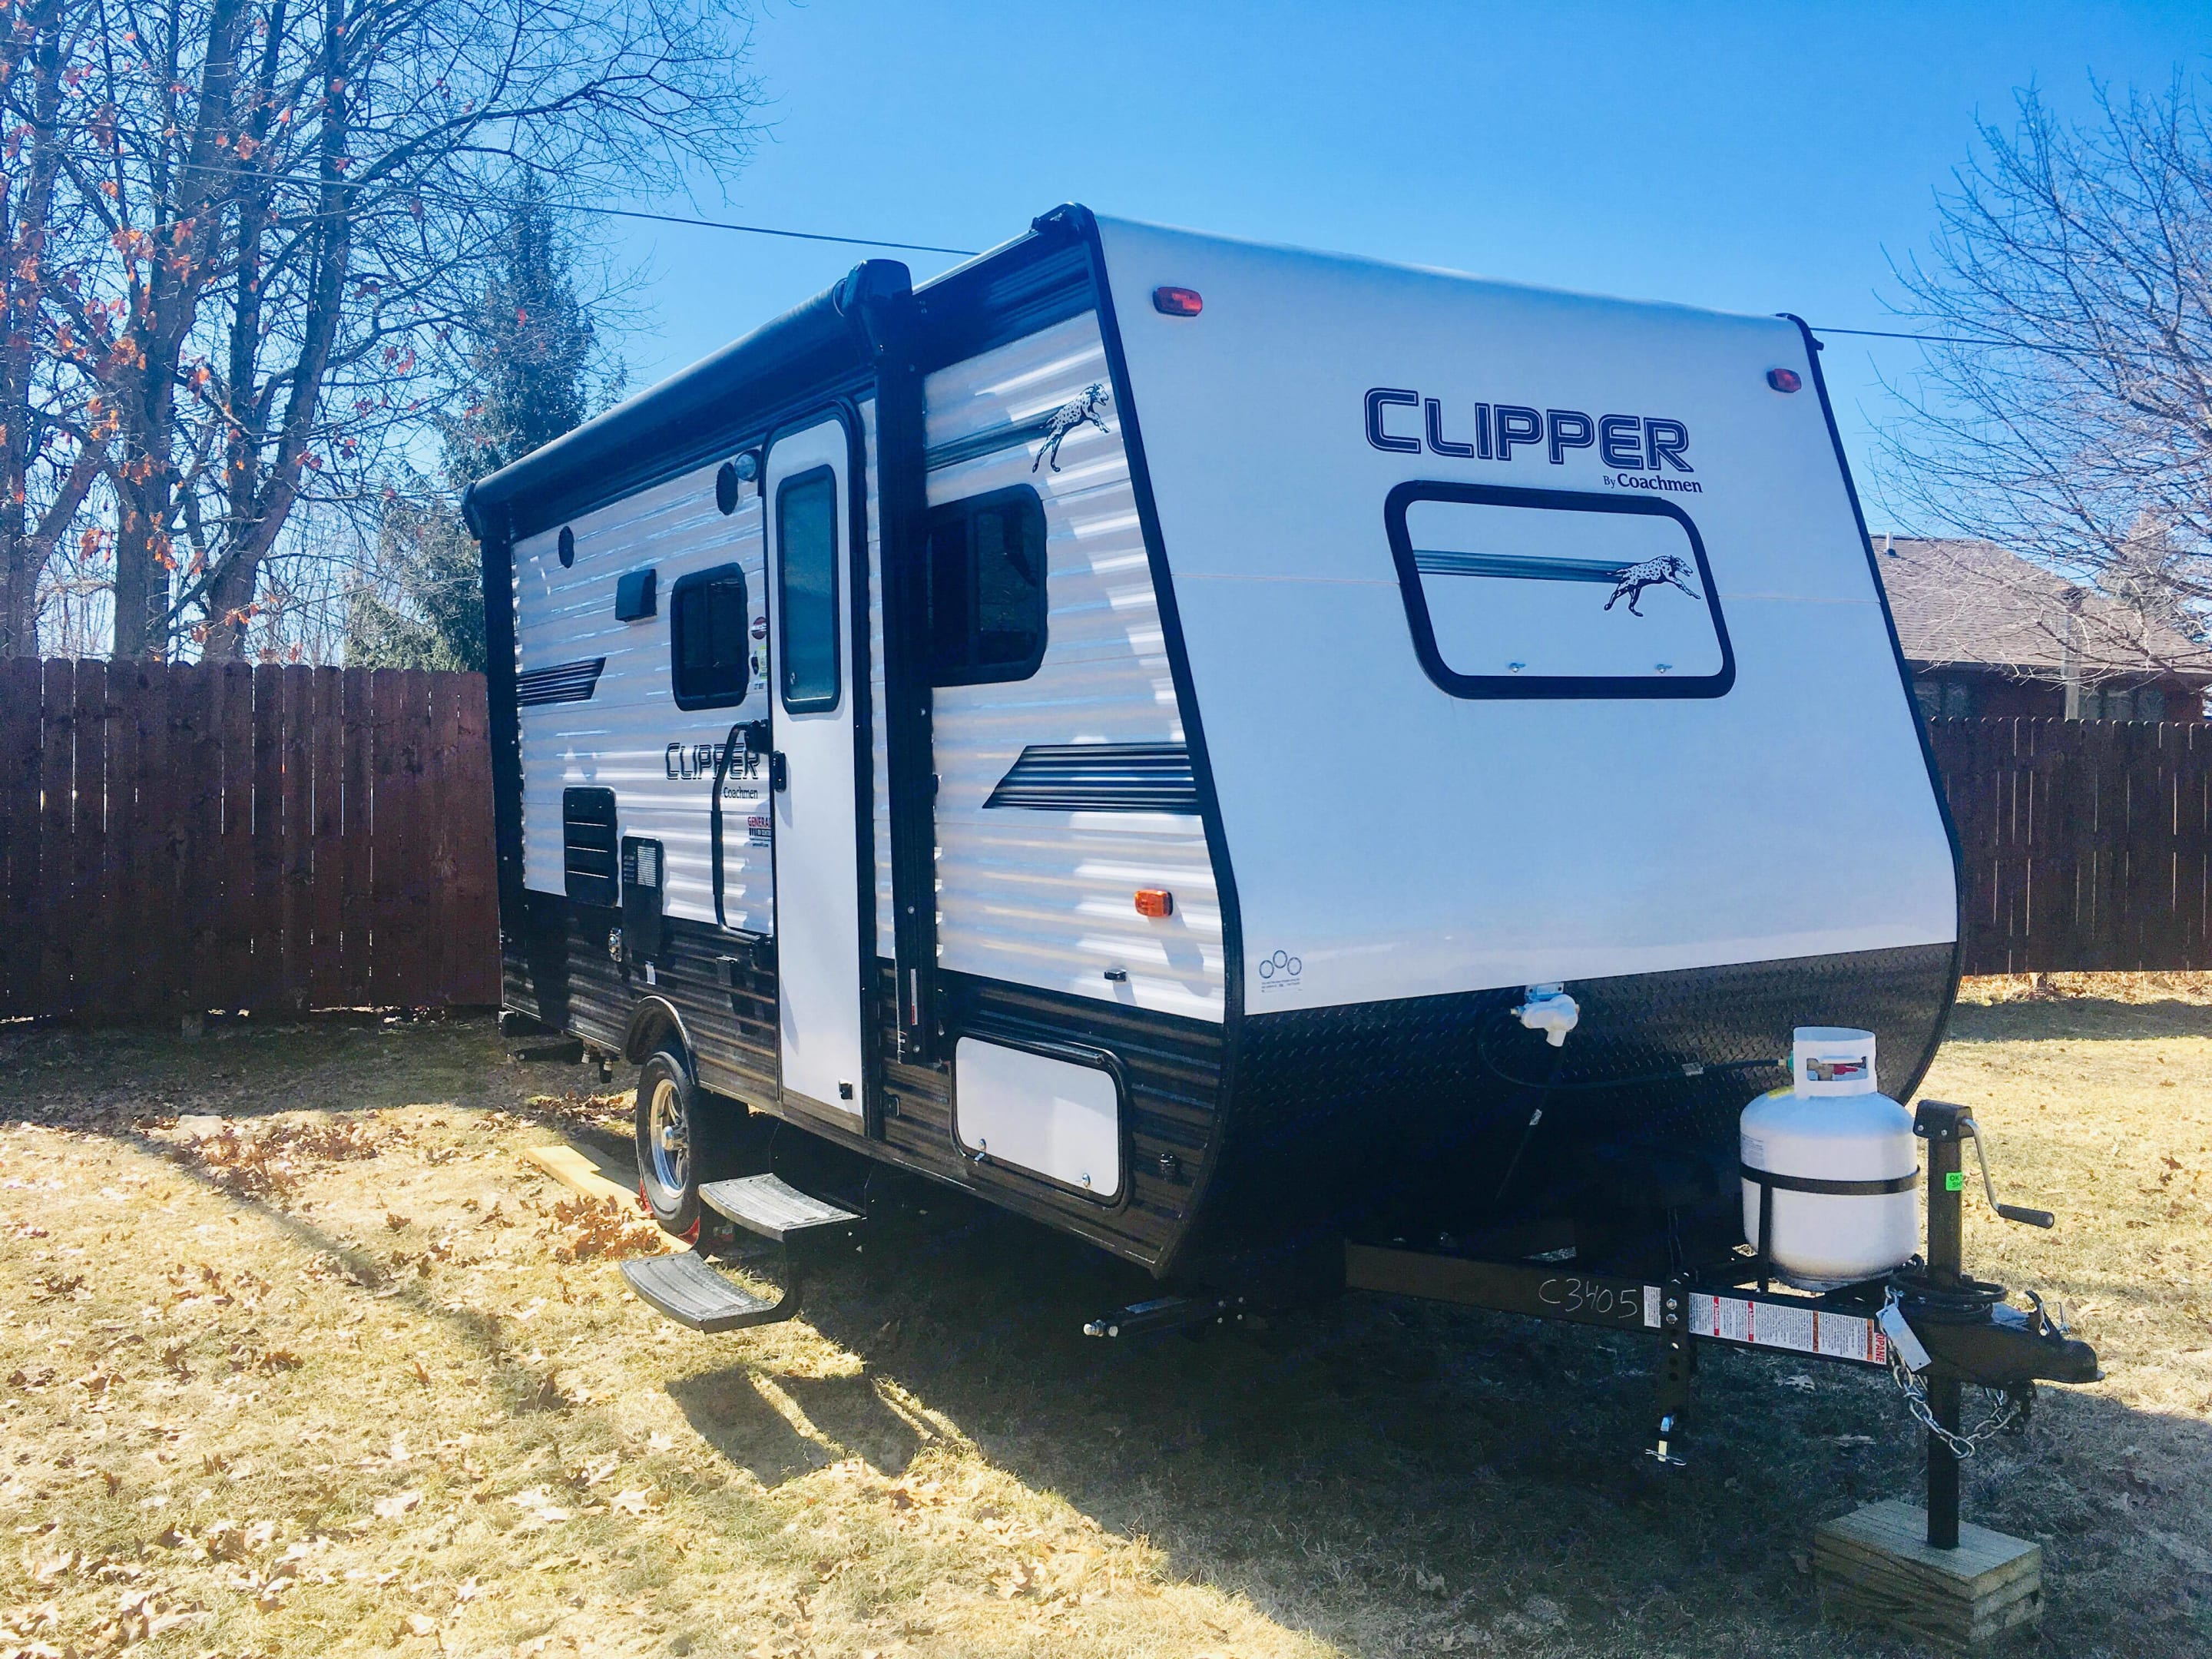 Front window closes for travel and aerodynamic front profile.  Double Steps for entry, Grab Handle by door for extra safety when coming and going!  Power Awning to help your camping get started fast!. Coachmen Clipper 2019